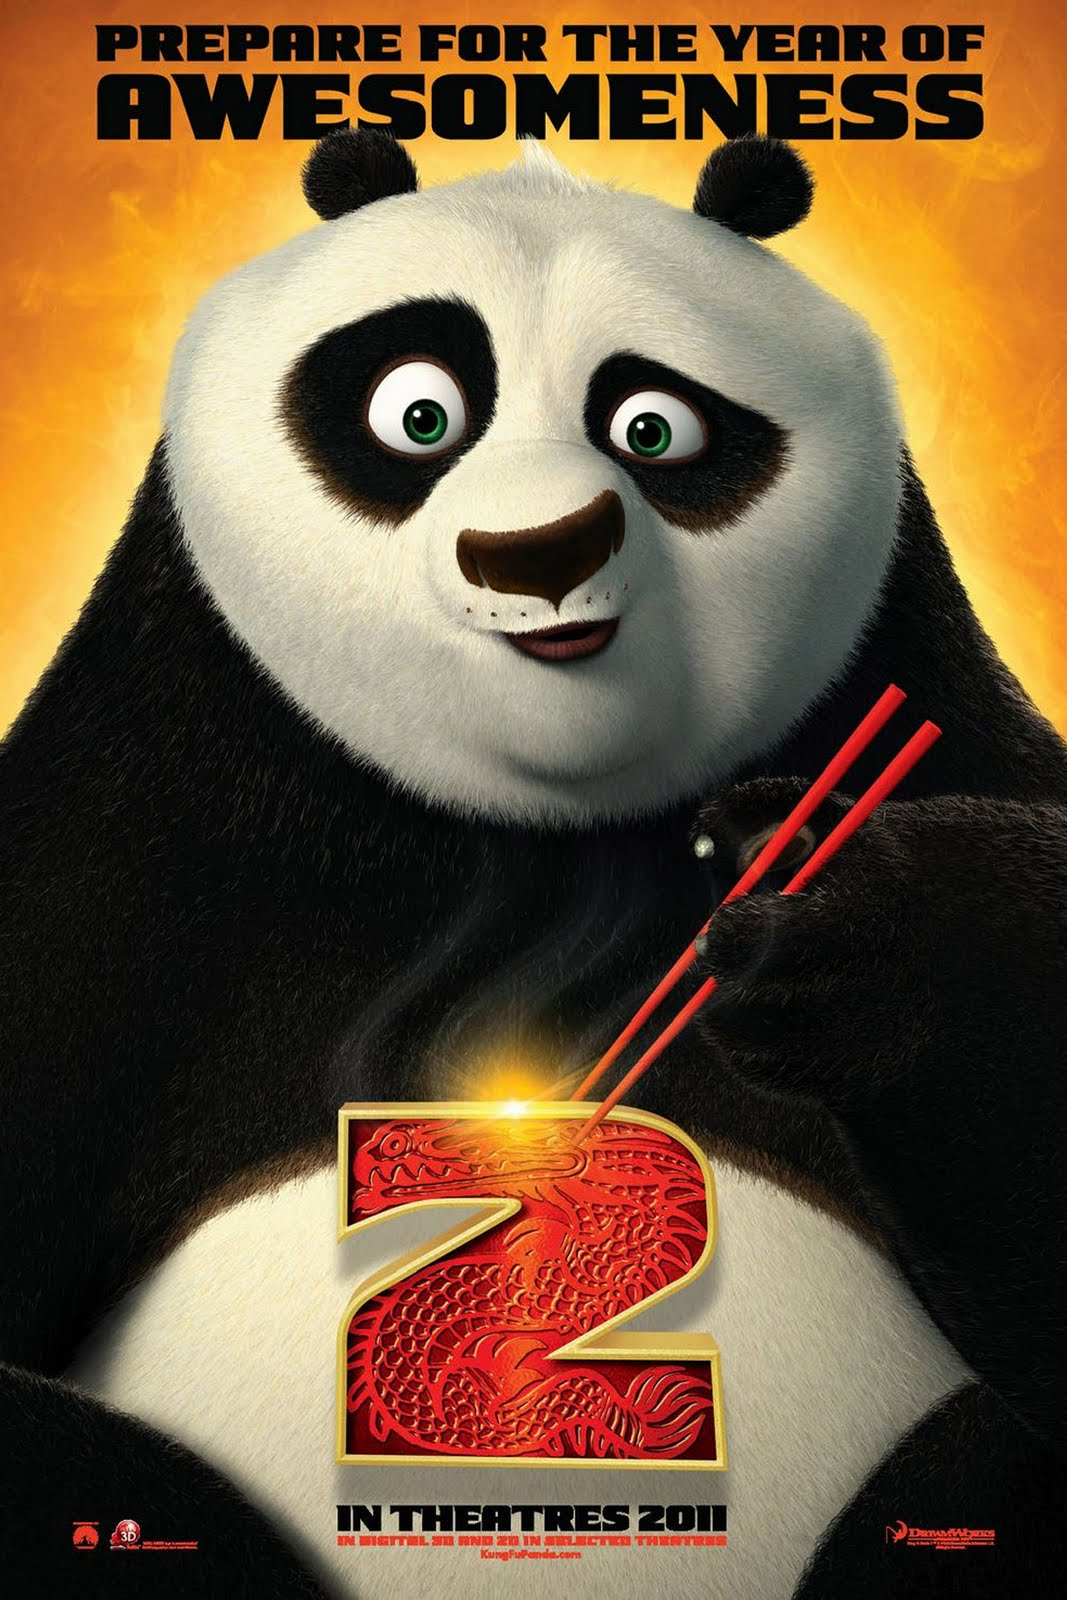 http://3.bp.blogspot.com/-QKObQ1IS0Co/TXT3RJXYKSI/AAAAAAAACt0/E63yLAoFYuY/s1600/kung-fu-panda-2-movie-poster.jpg